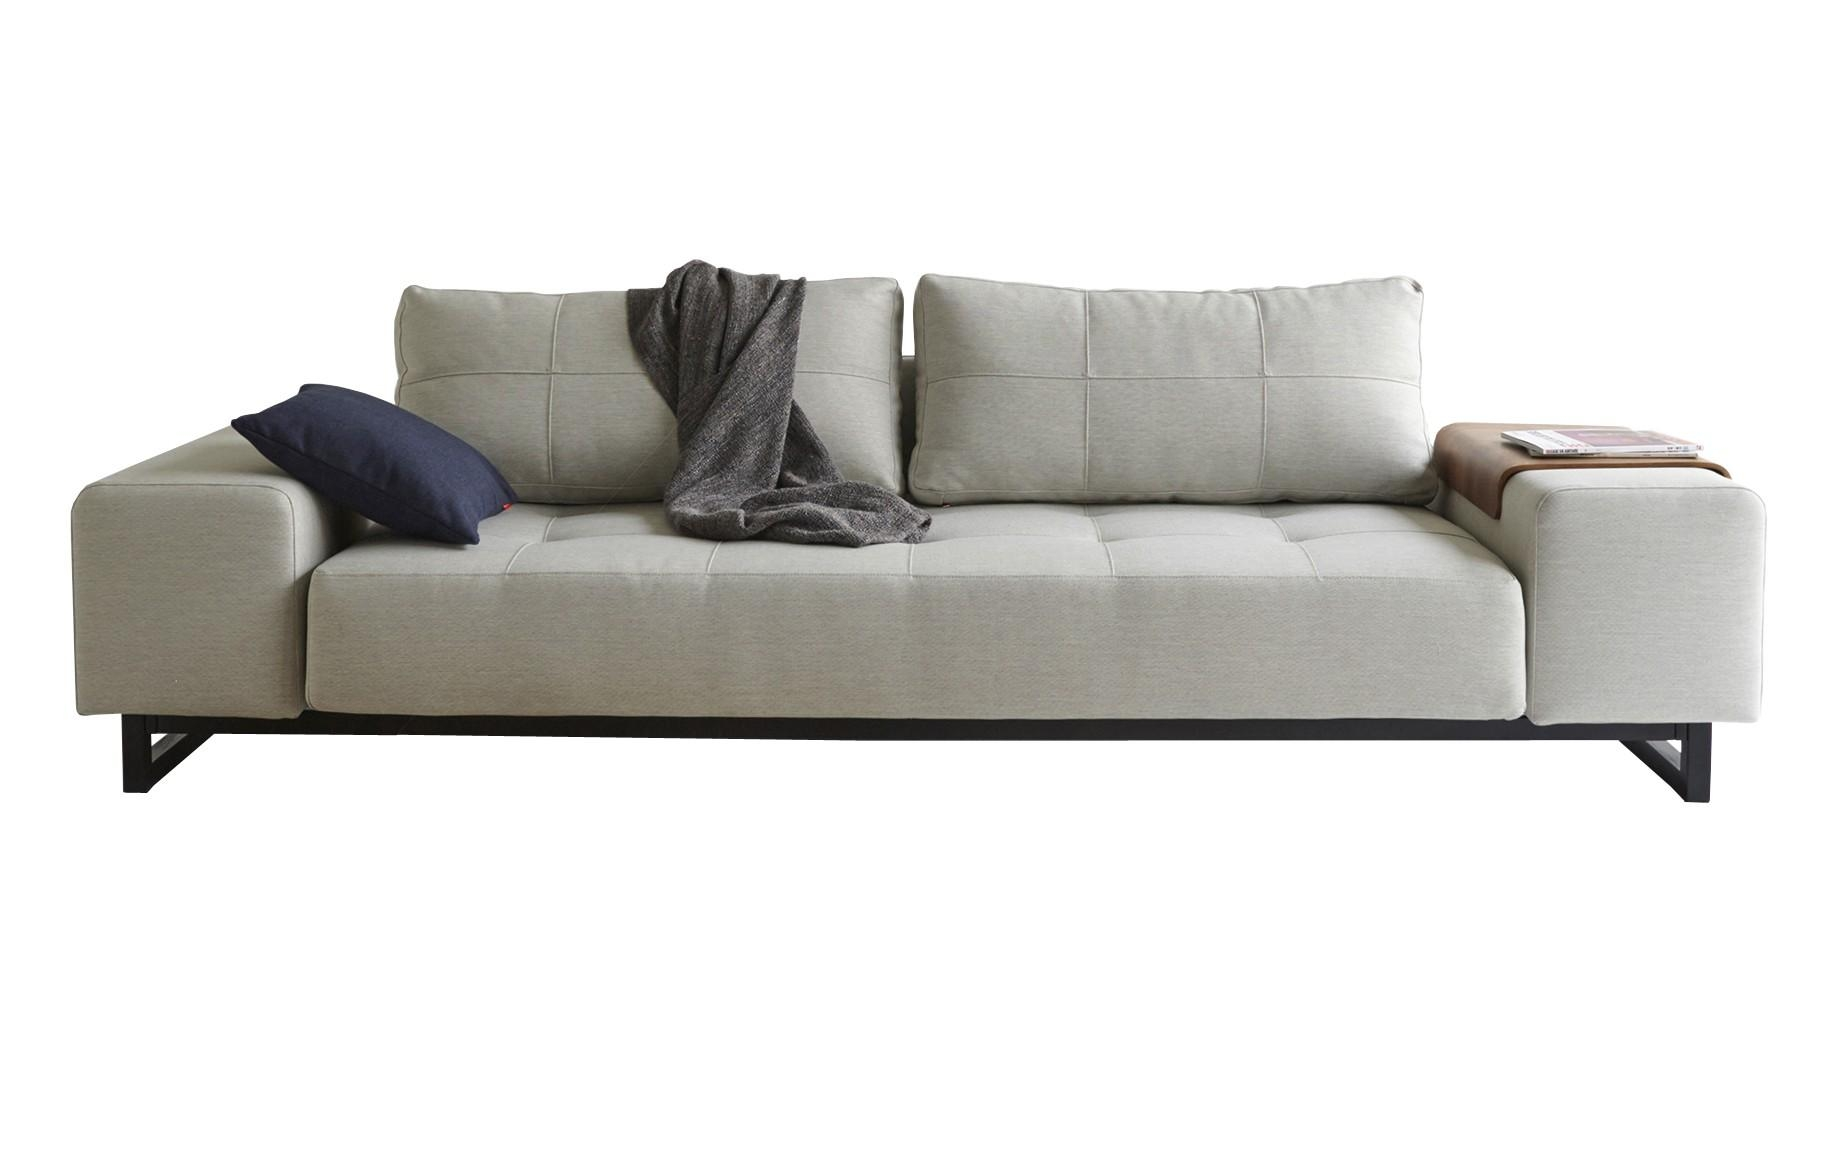 Grand Deluxe Excess Lounger Sofa Bed | Viesso Within Sofa Lounger Beds (Image 7 of 20)